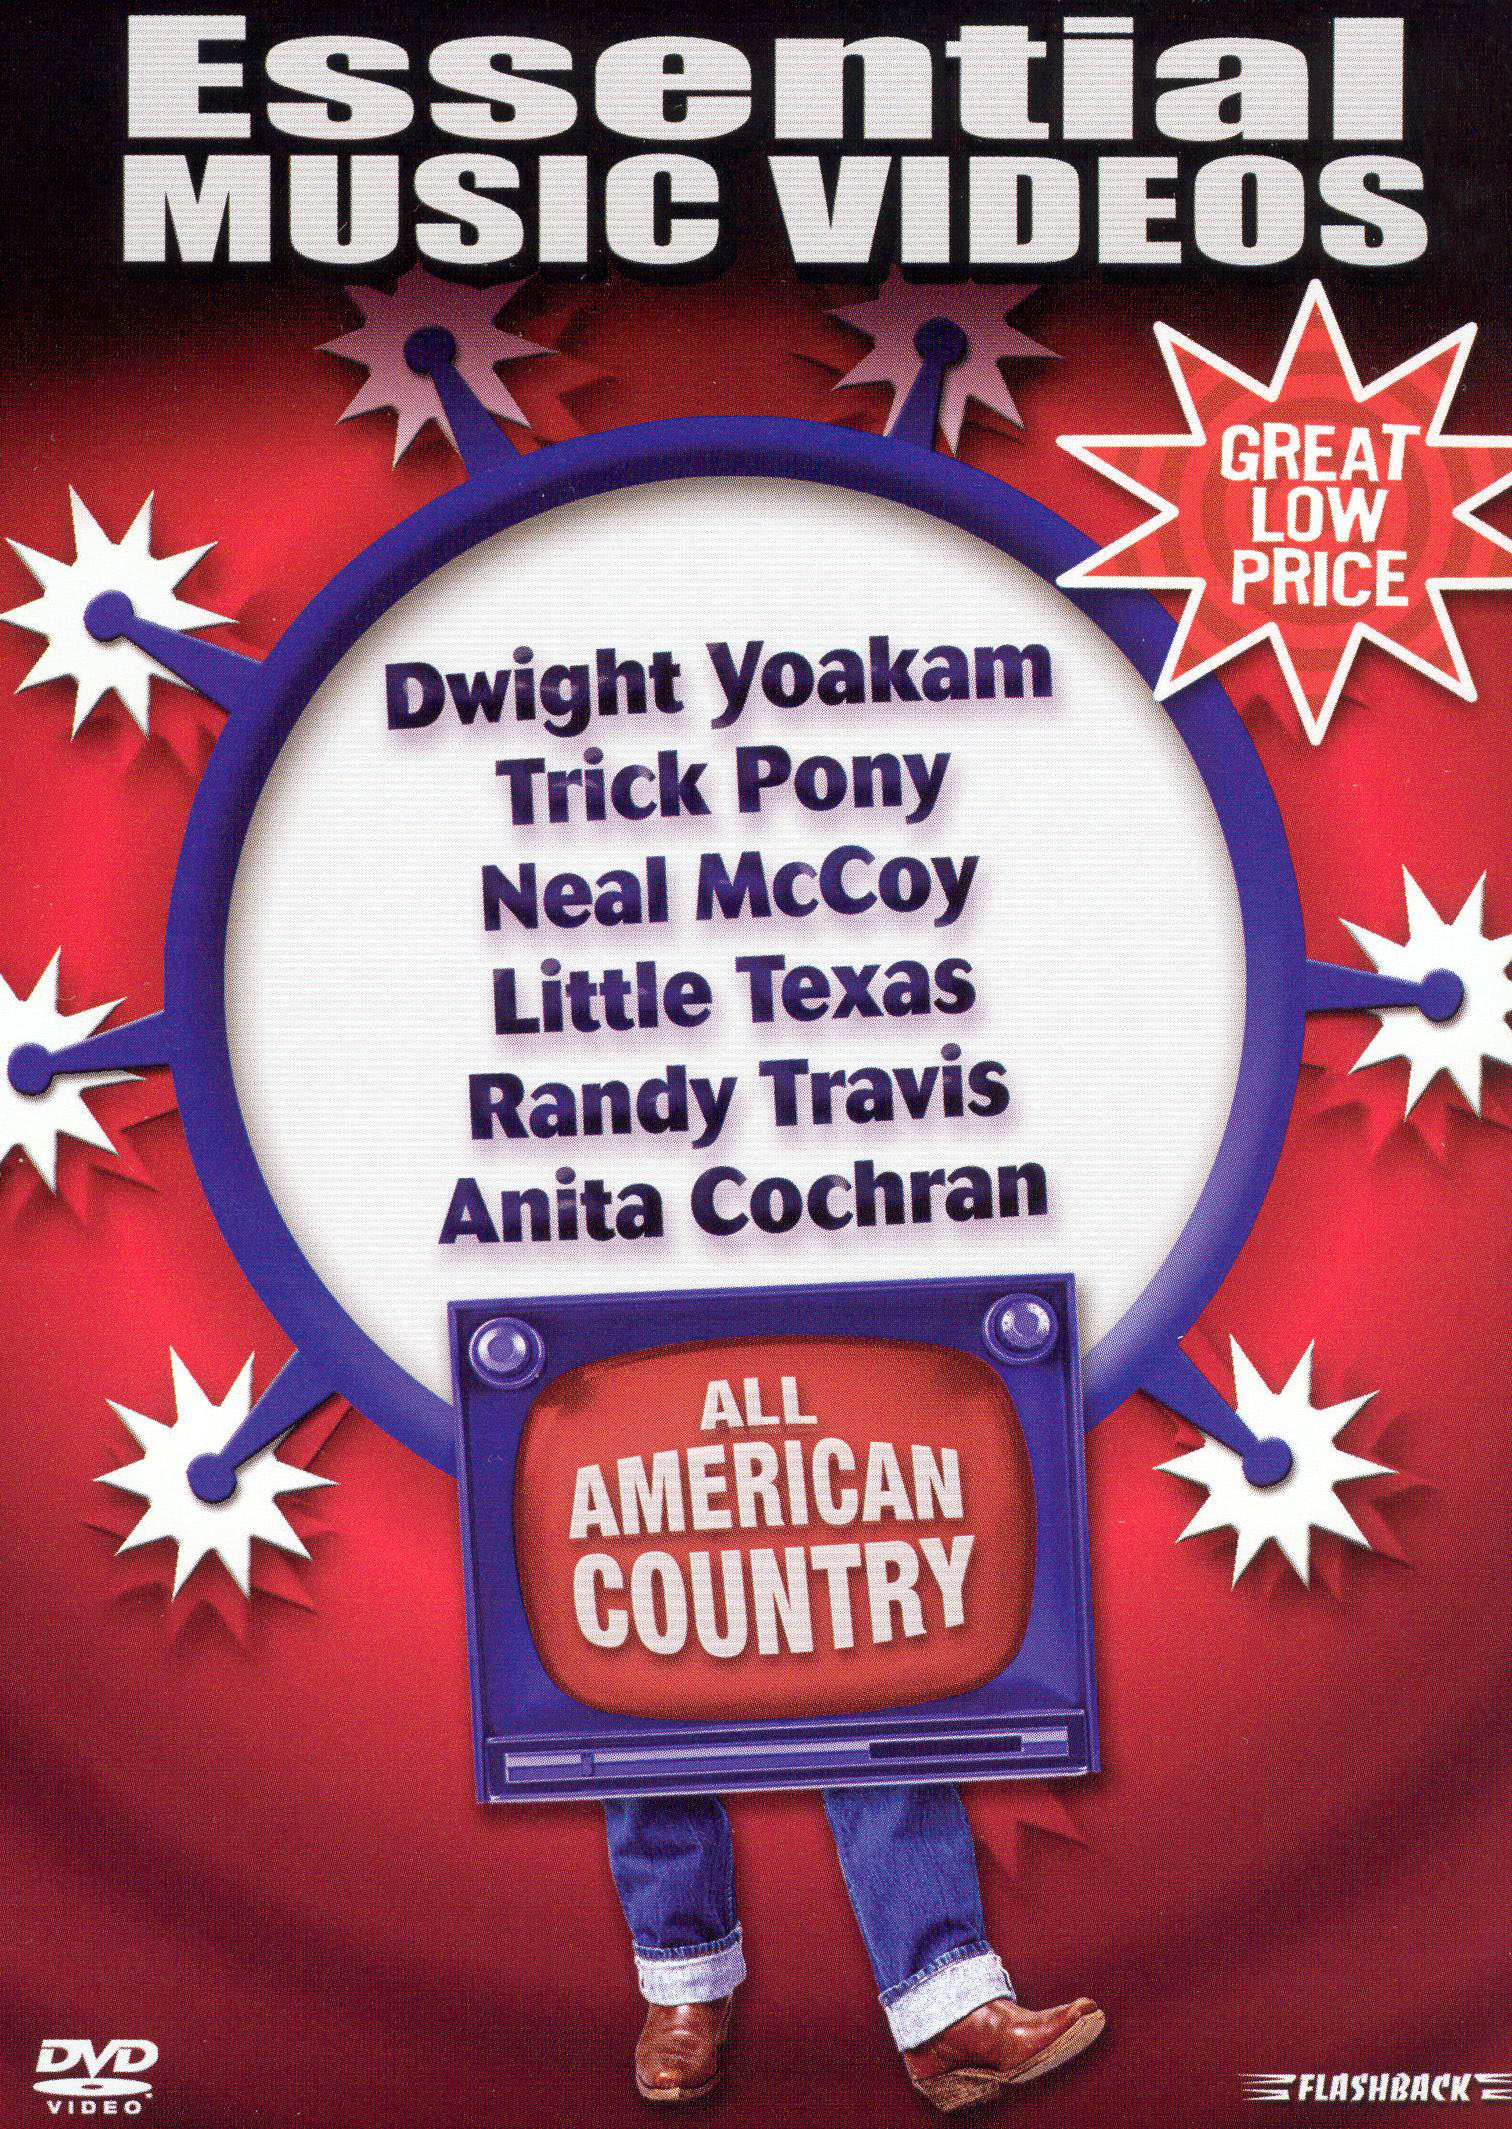 Essential Music Videos: All American Country